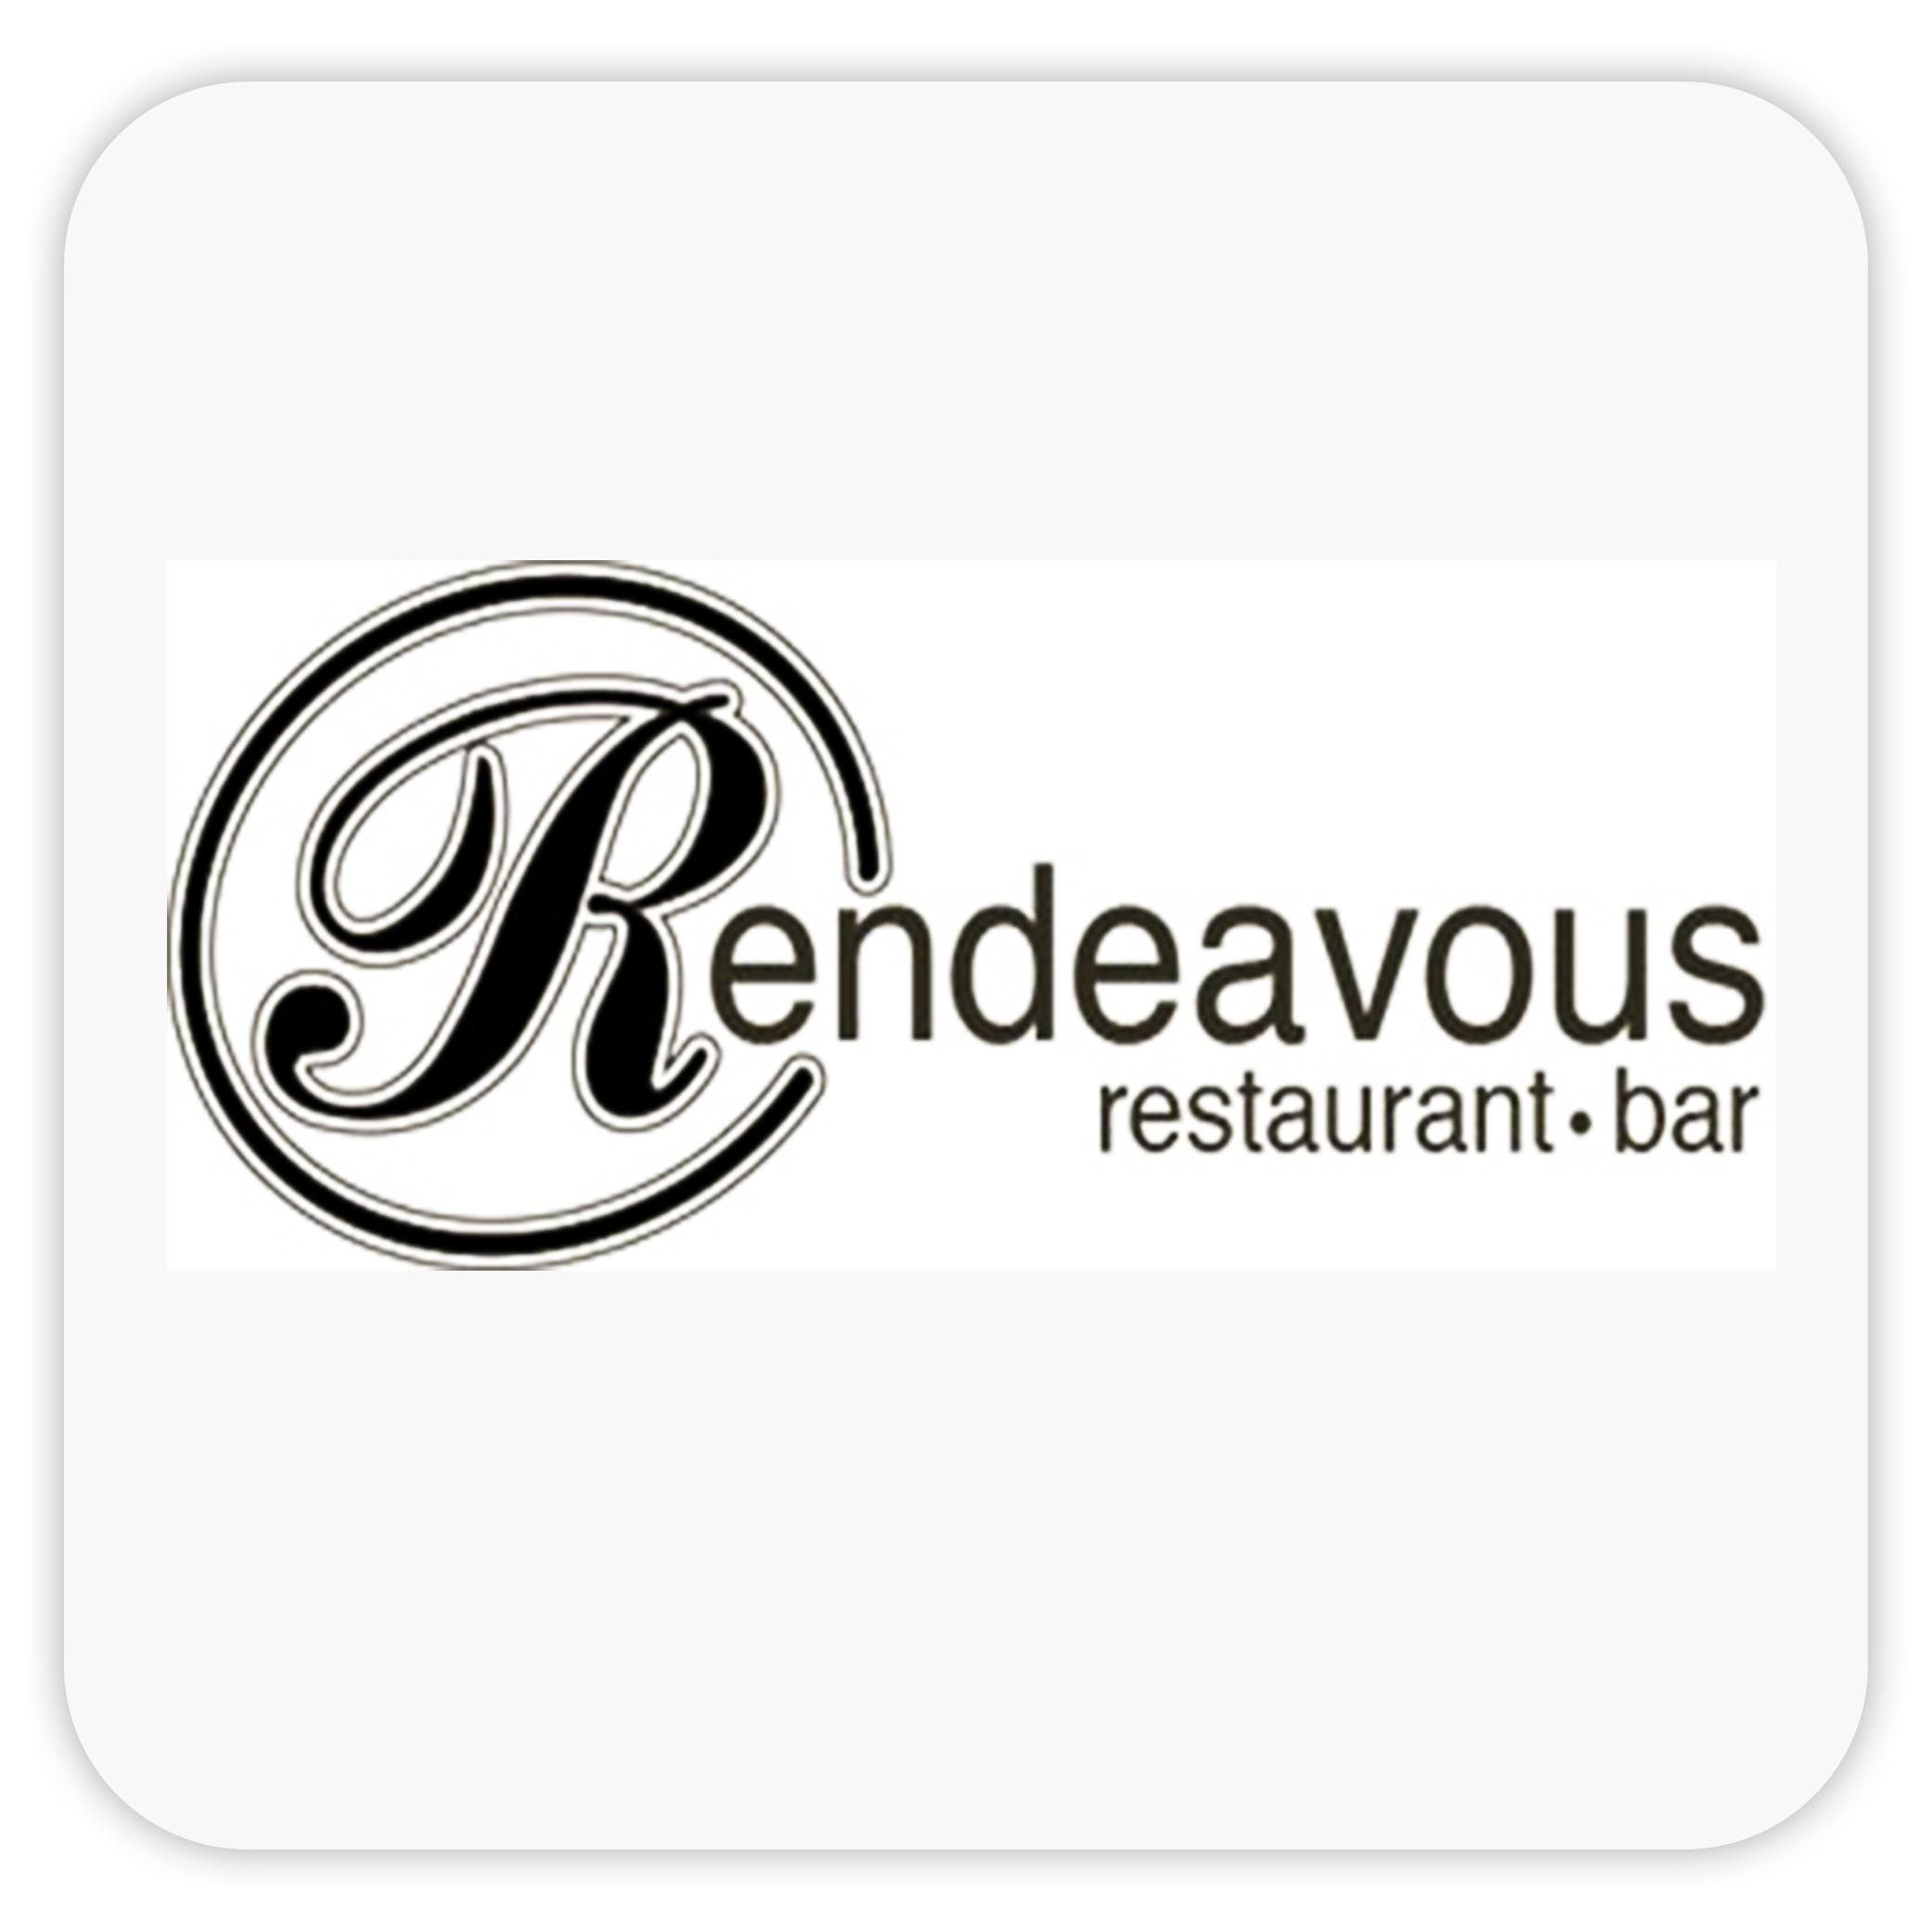 Rendeavous Restaurant & Bar